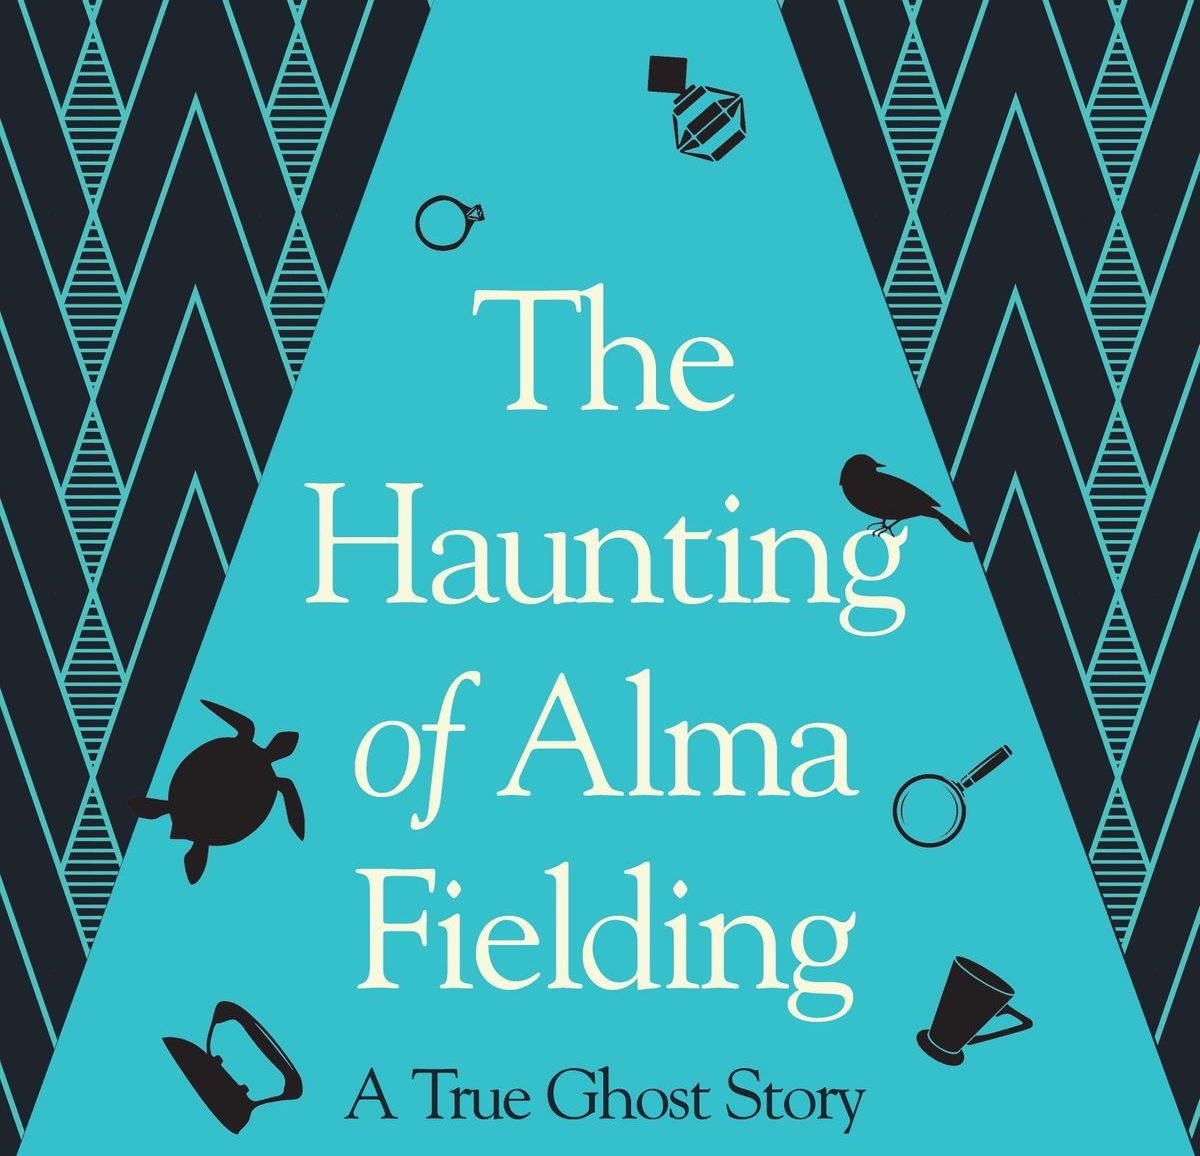 Kate Summerscale: The Haunting of Alma Fielding